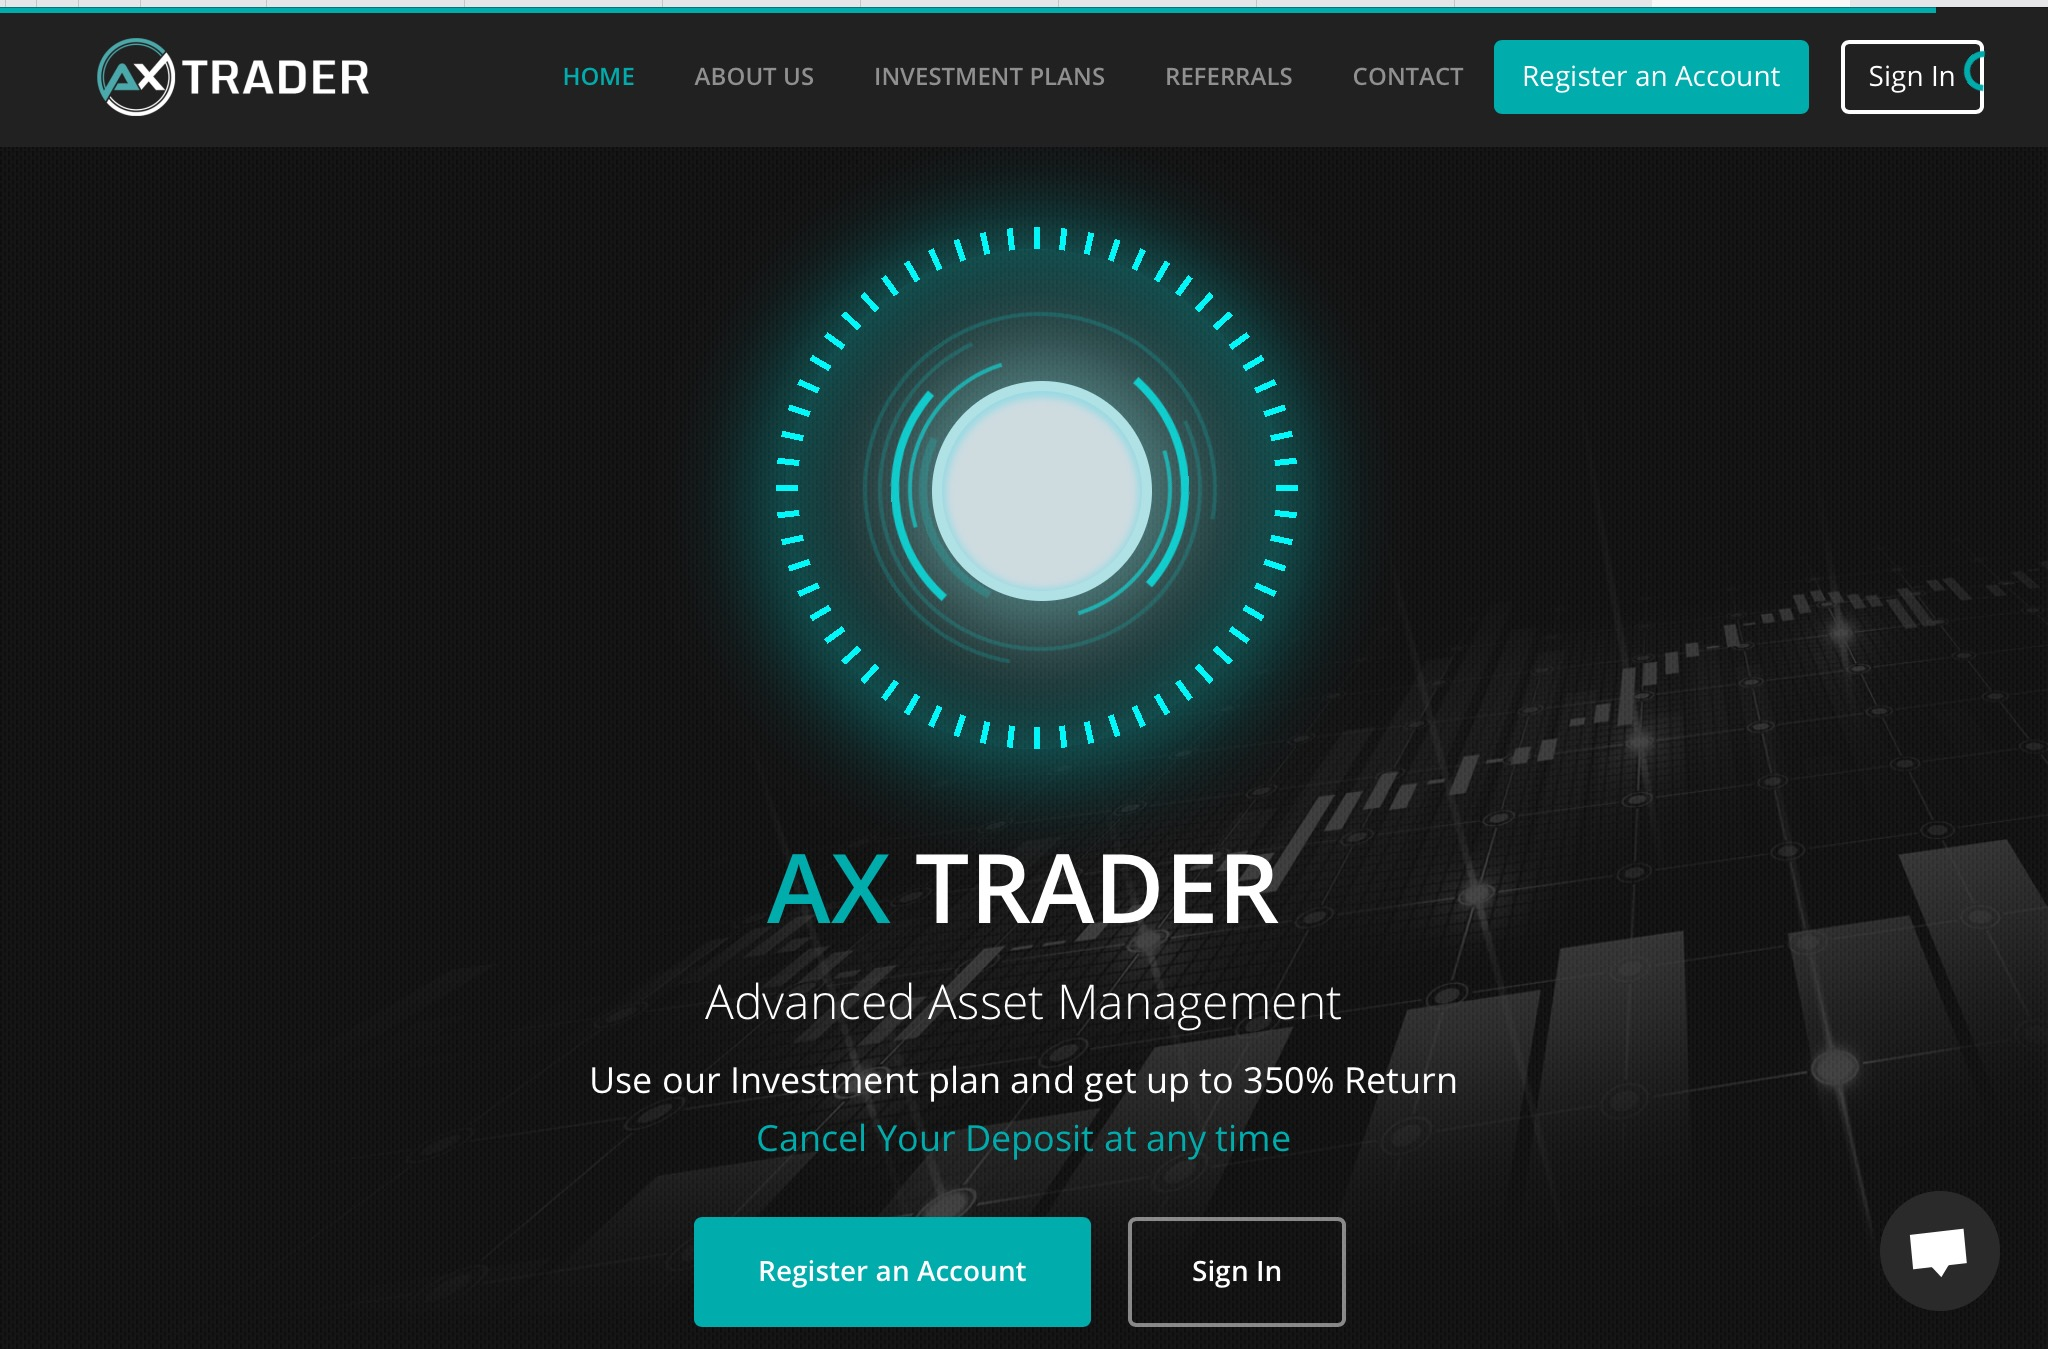 Passive Income With AX Trader